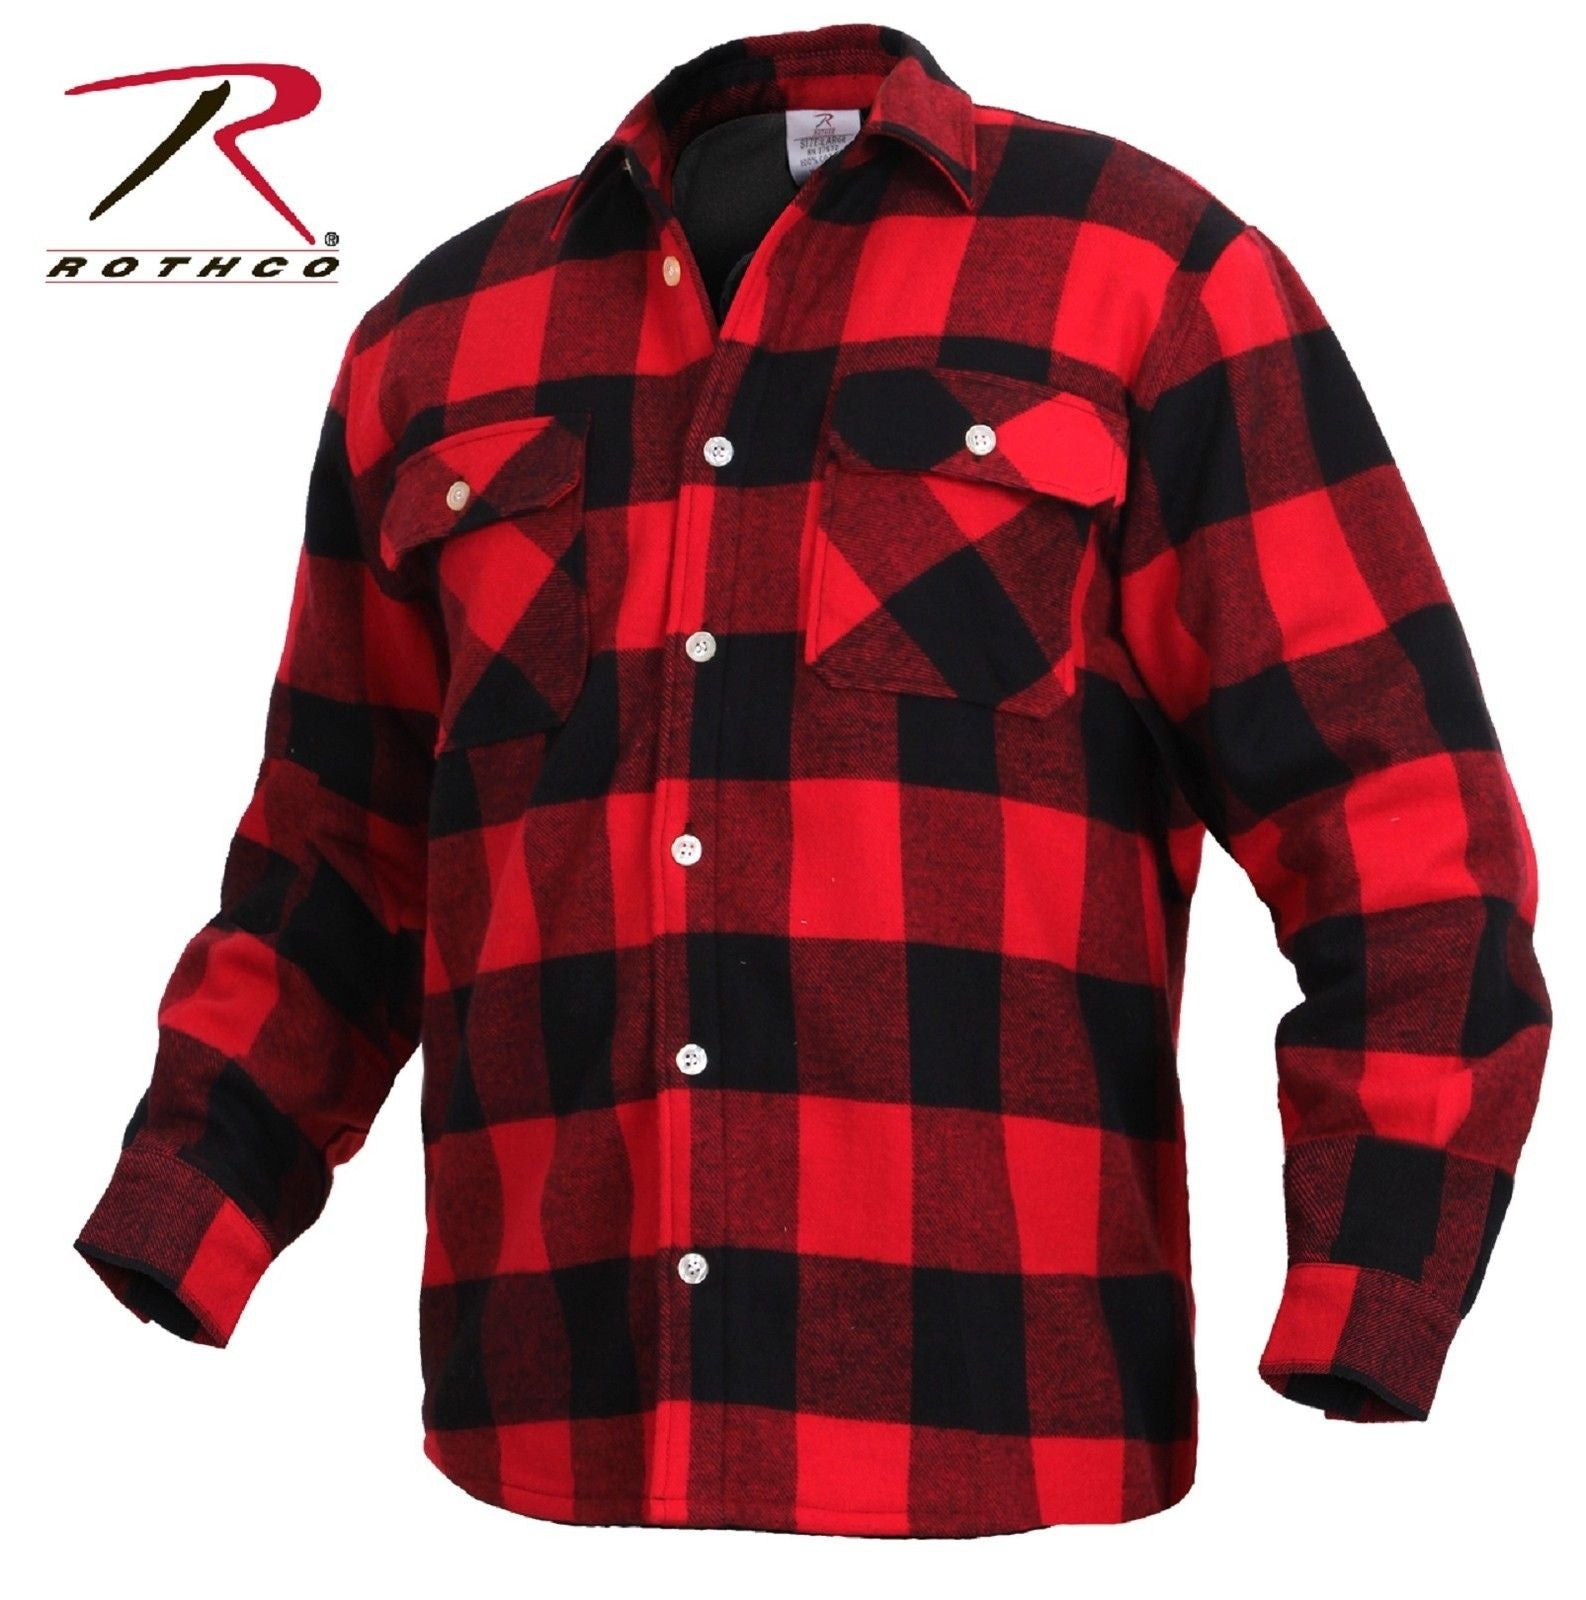 Mens Fleece-Lined Plaid Flannel Shirt - Rothco Red & Black ...